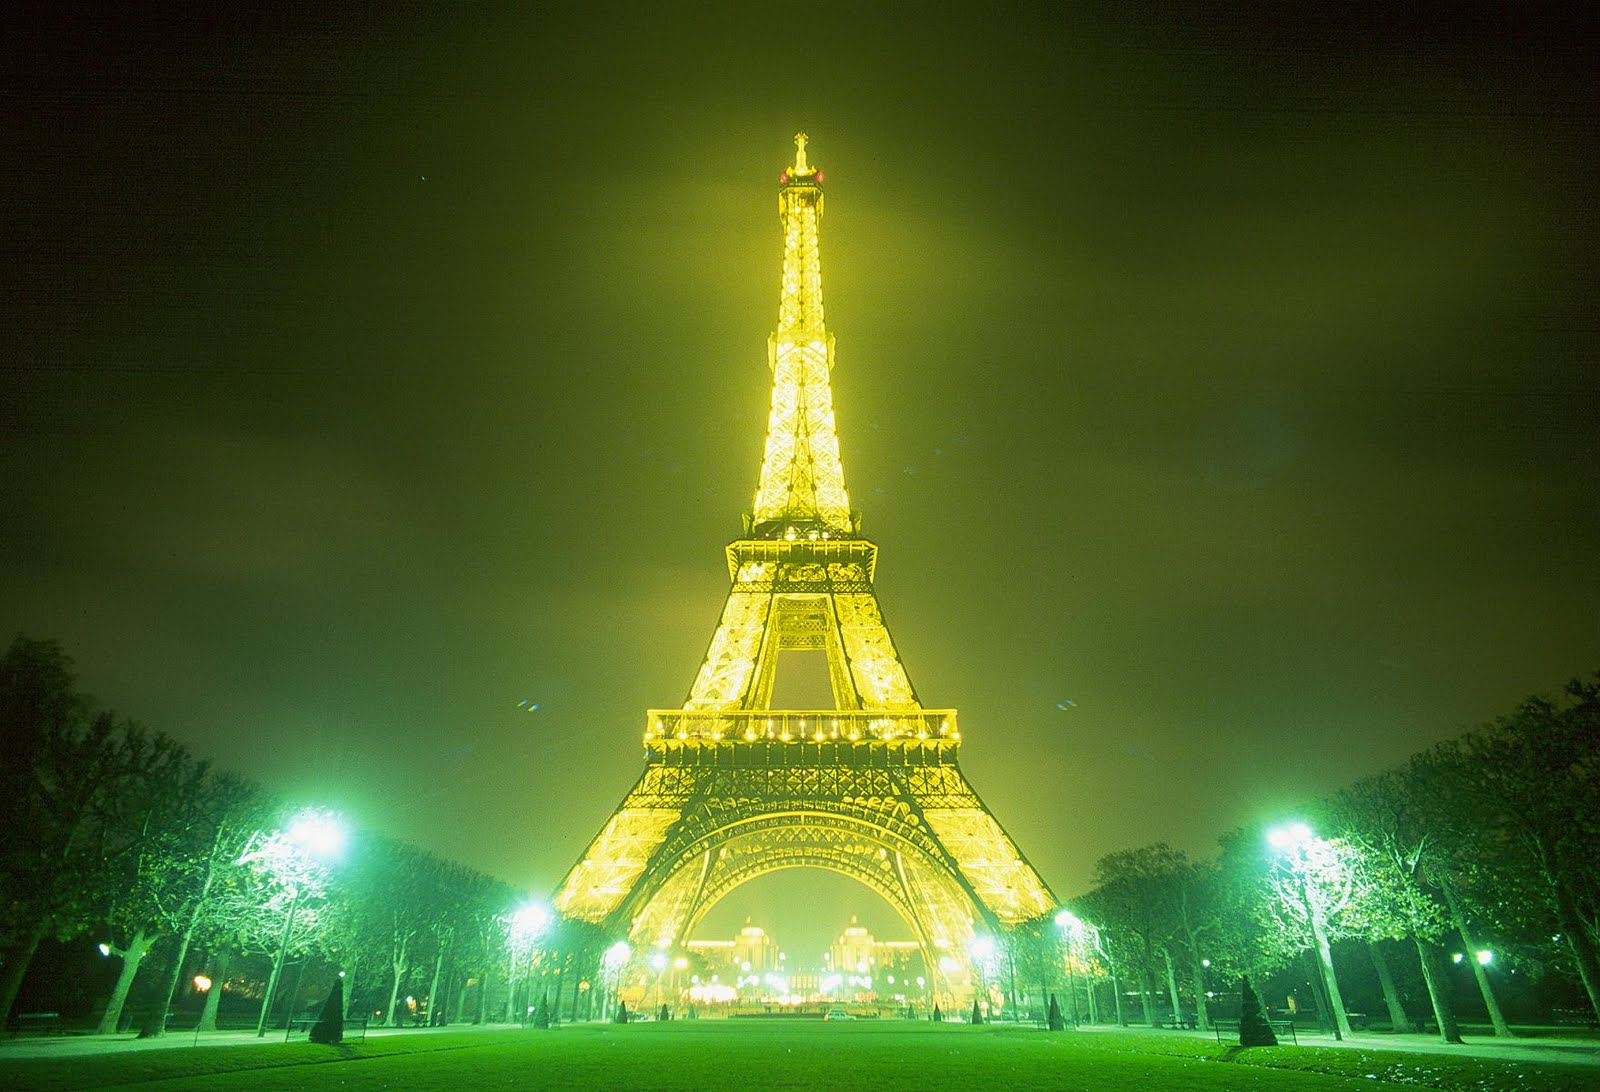 Travel and tourism eiffel tower wallpaper and pictures review nice eiffel tower wallpaper altavistaventures Gallery